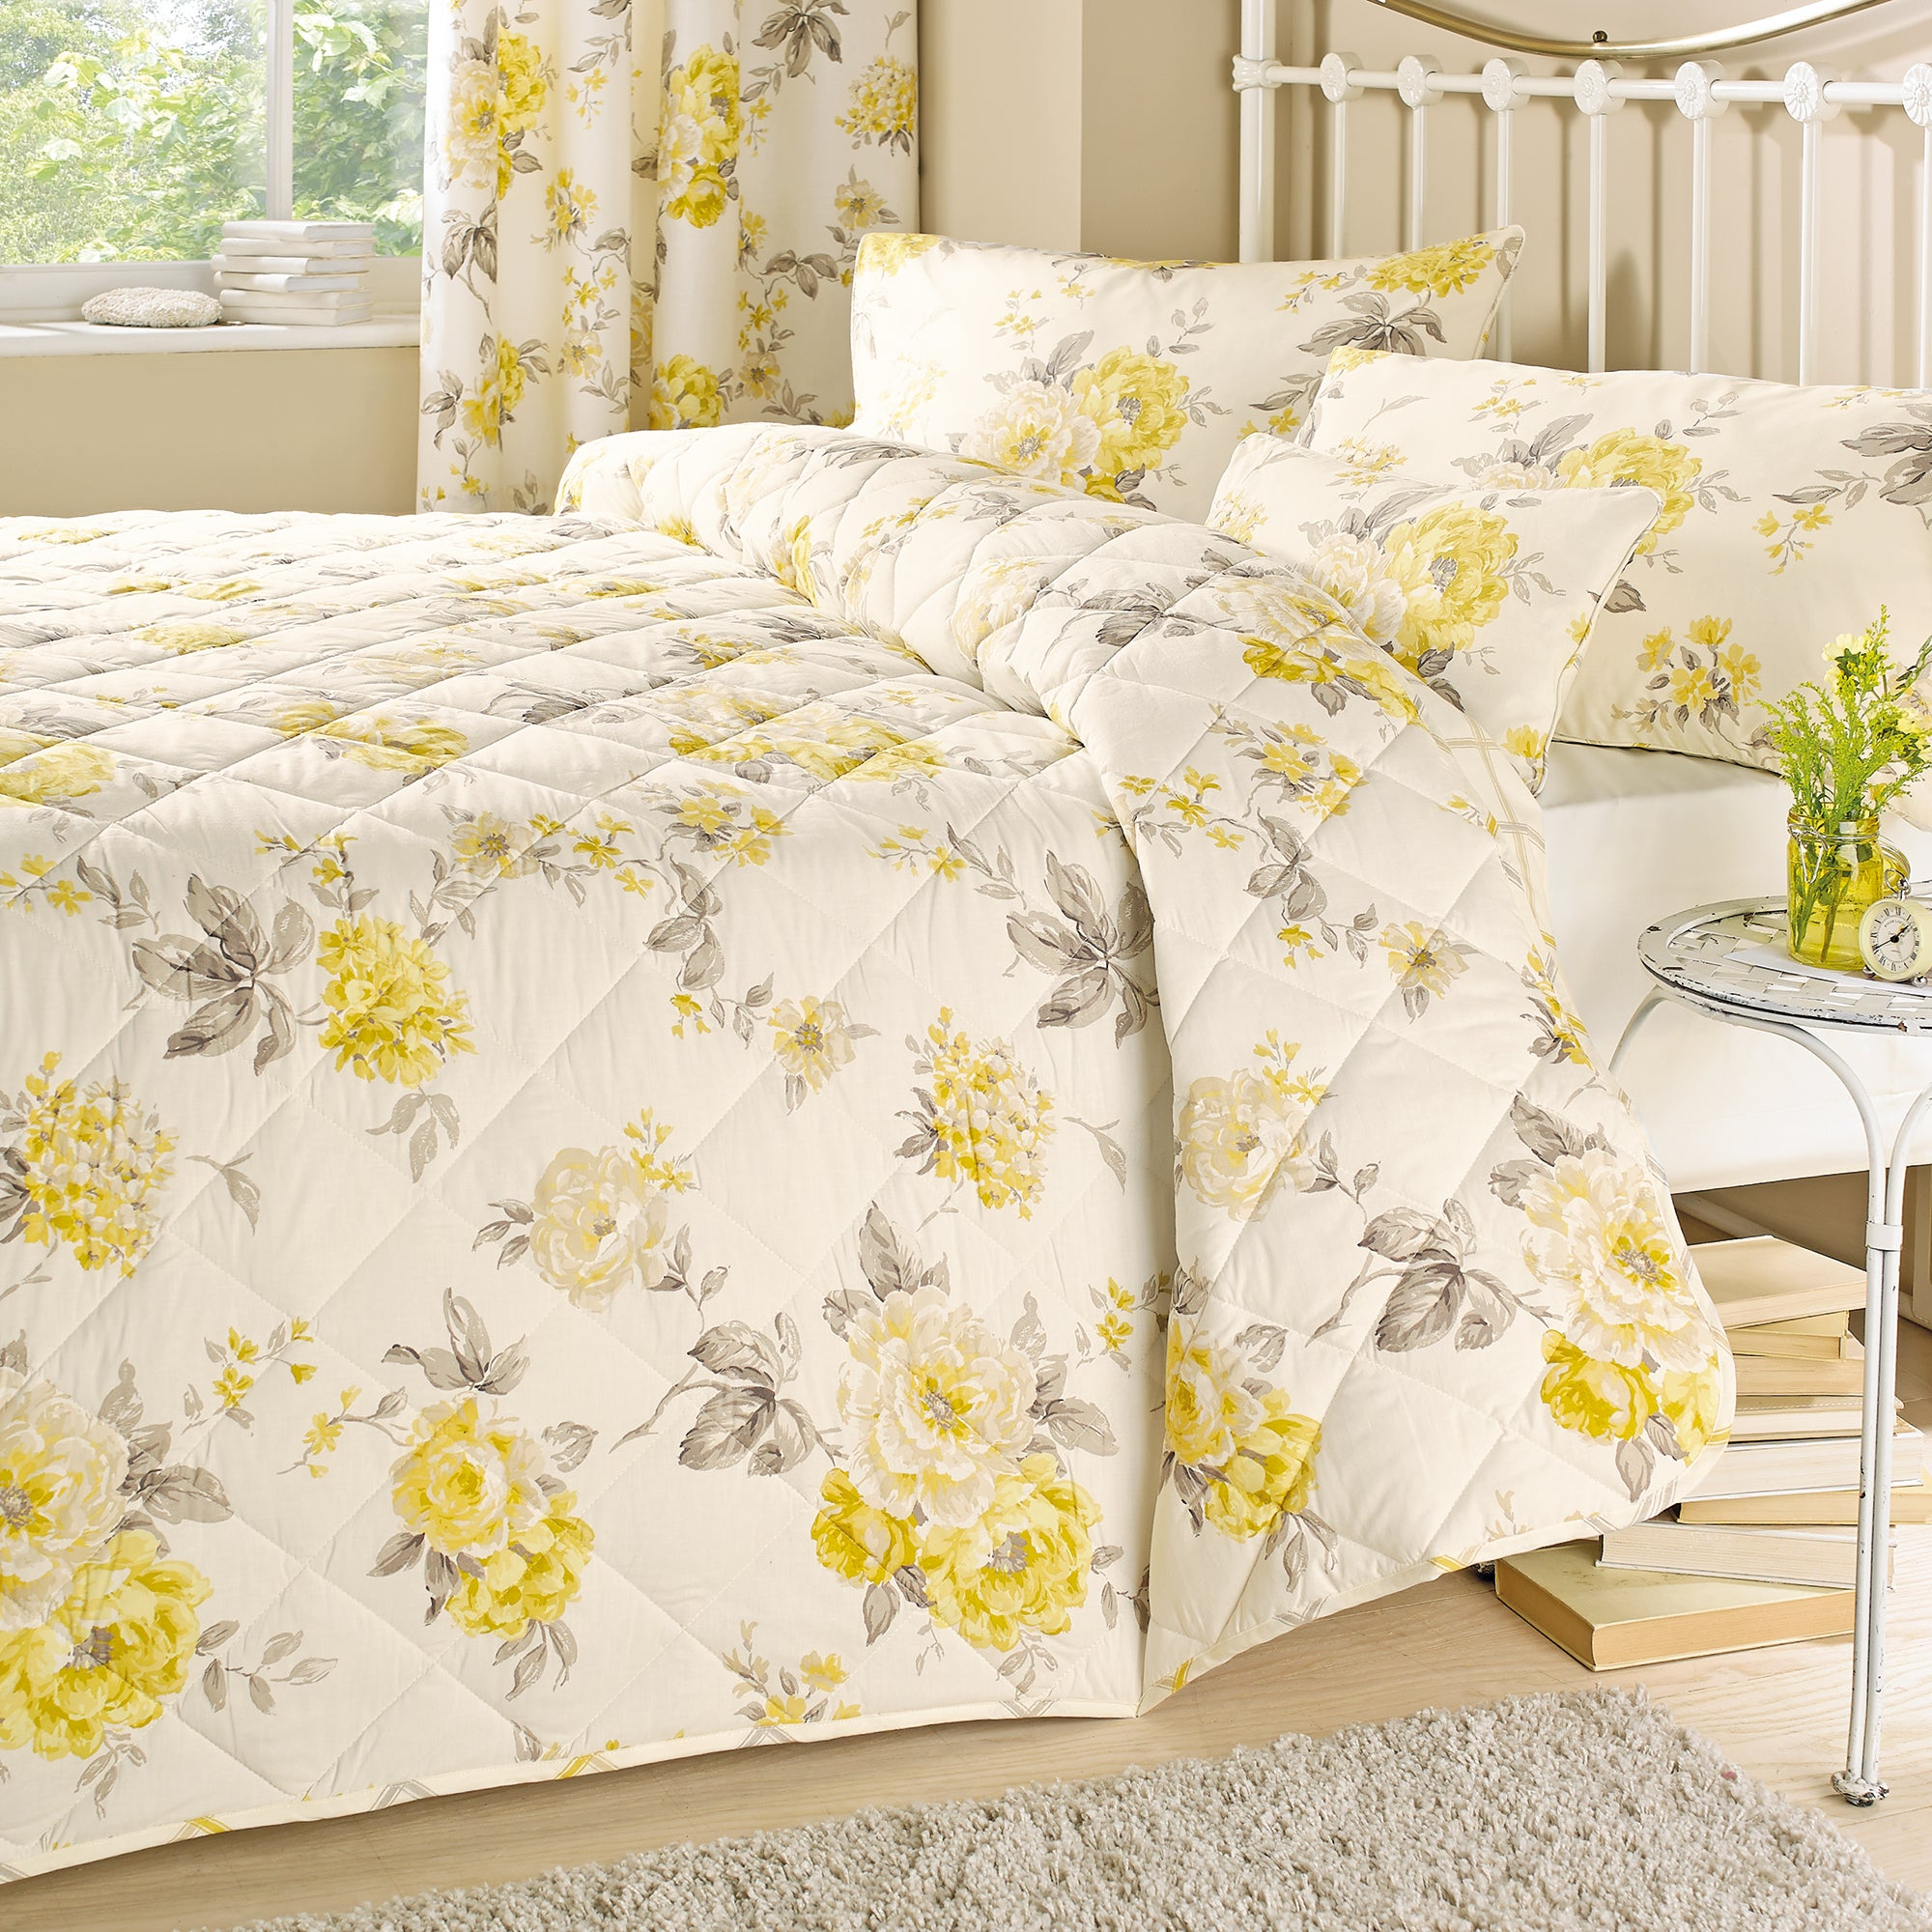 Lemon Windermere Bedlinen Collection